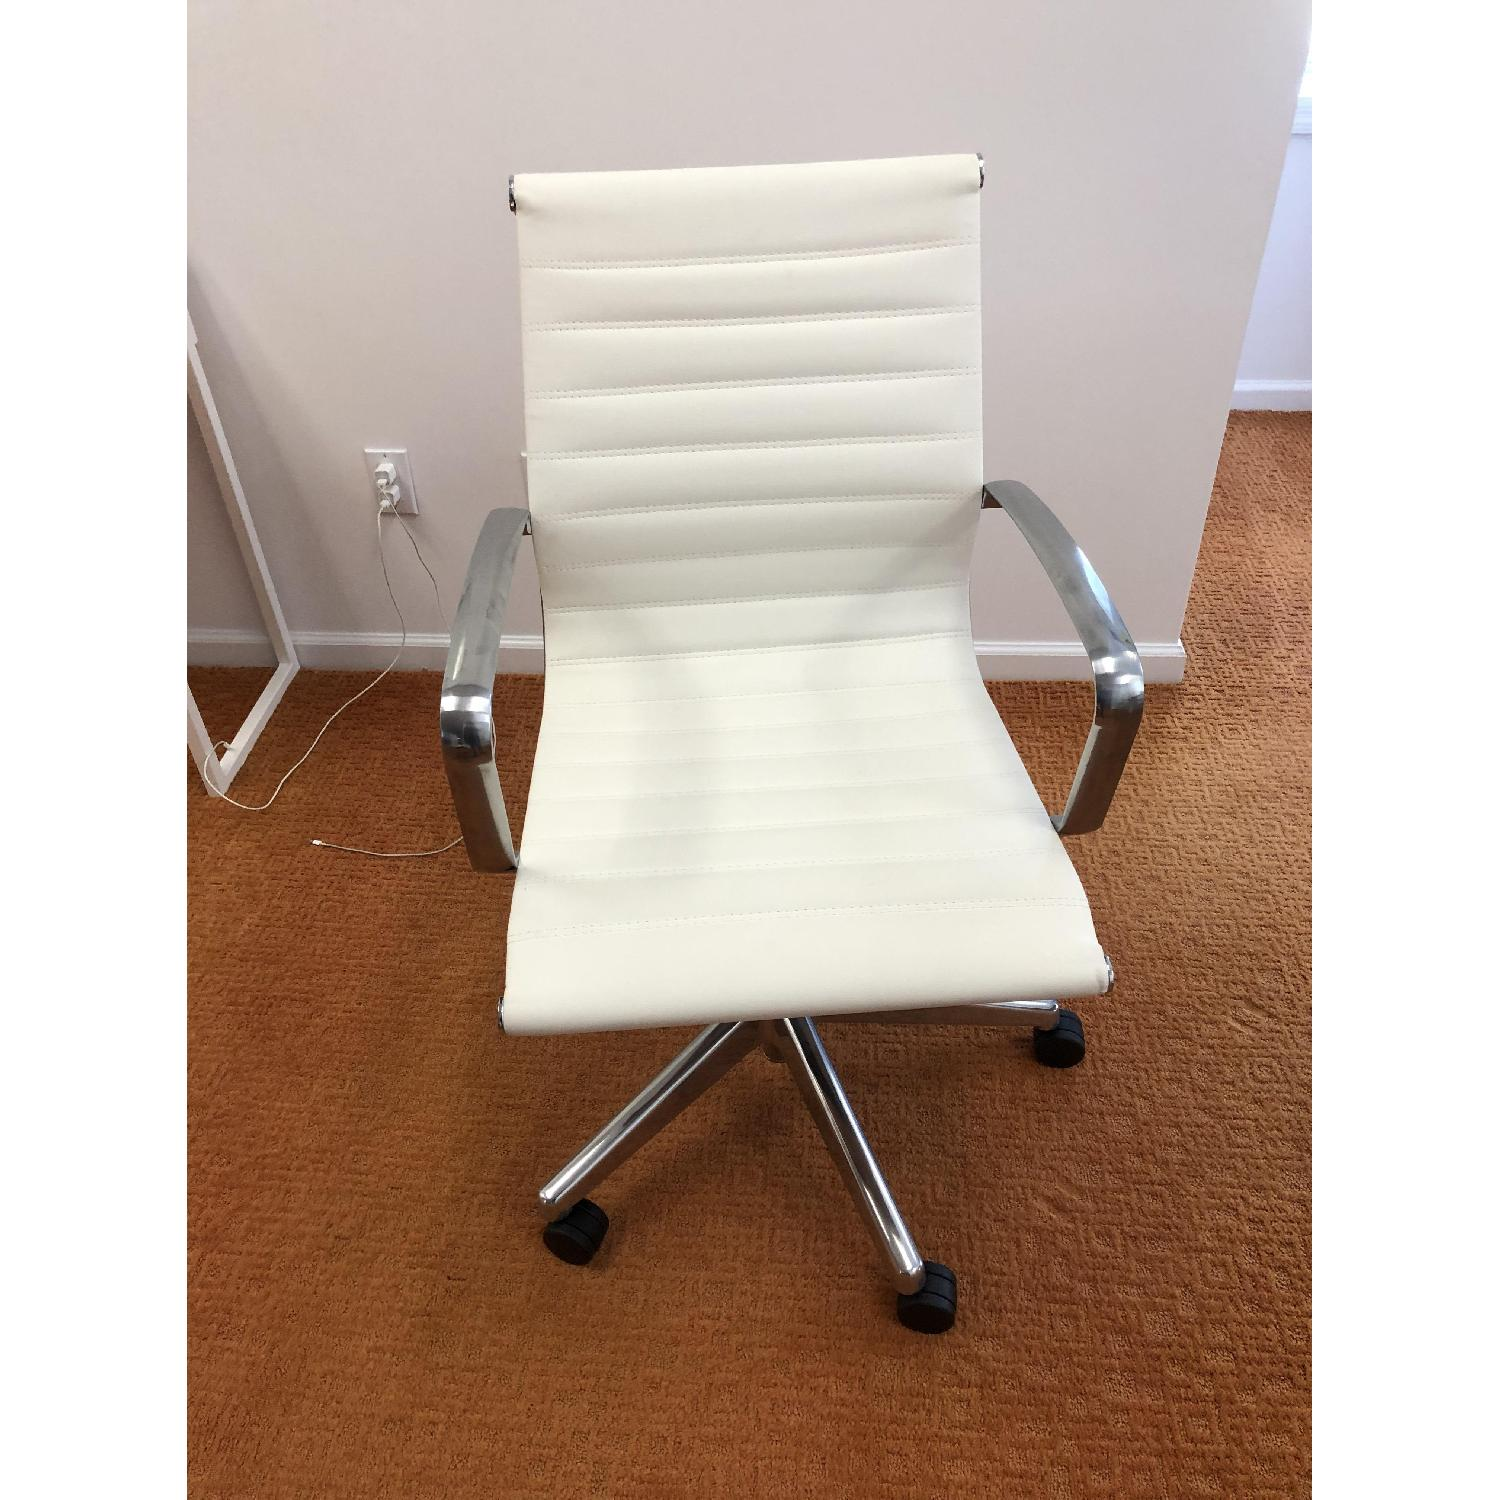 Medium Back Office Chair in White-1